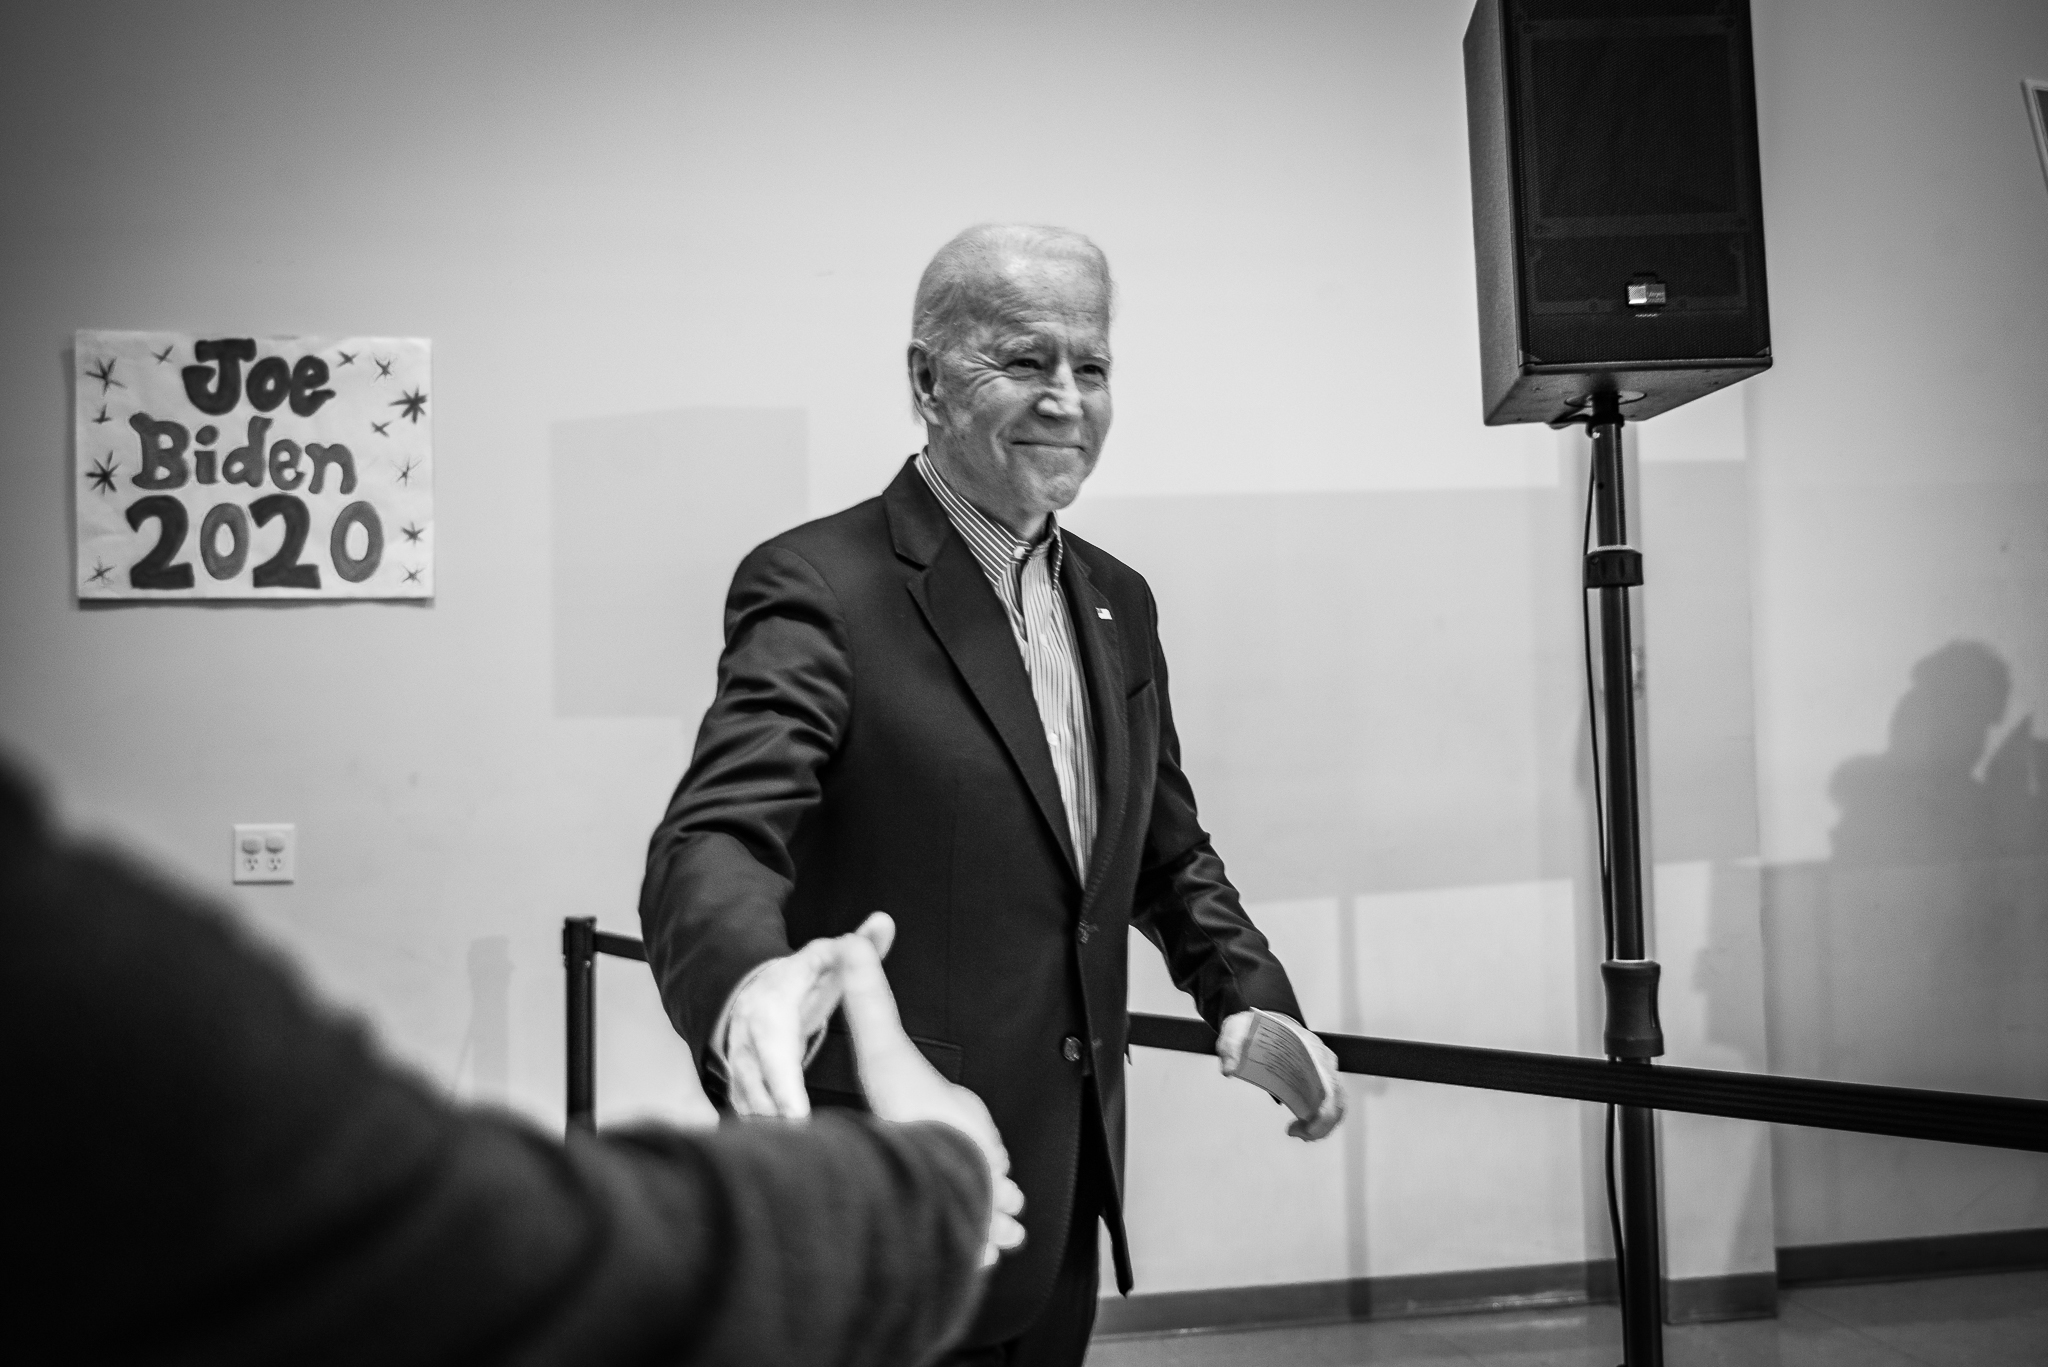 Joe Biden greets supporters in Sumter, South Carolina a day before primary voting begins. February 28, 2020. Photo: Lance Monotone.